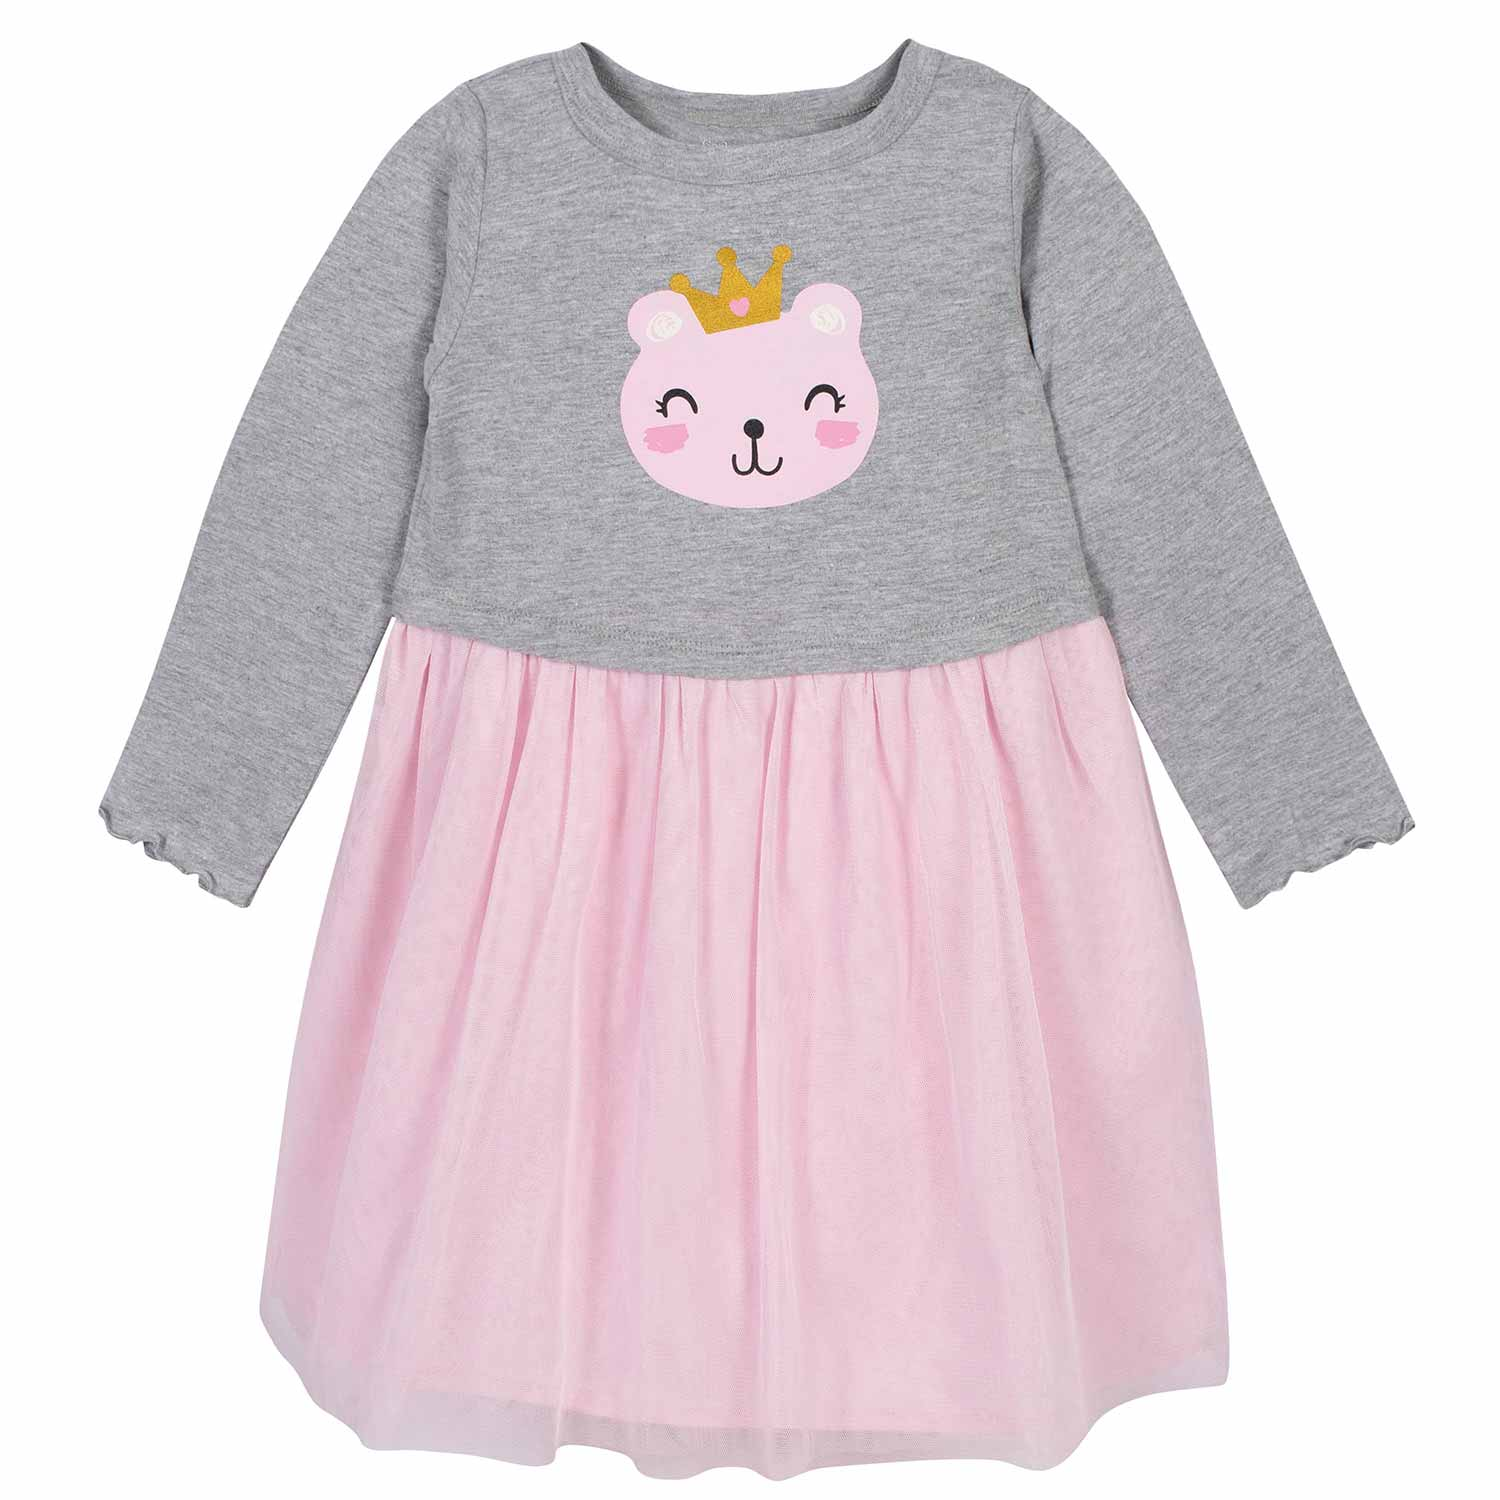 Toddler Girls Princess Bear Tulle Dress